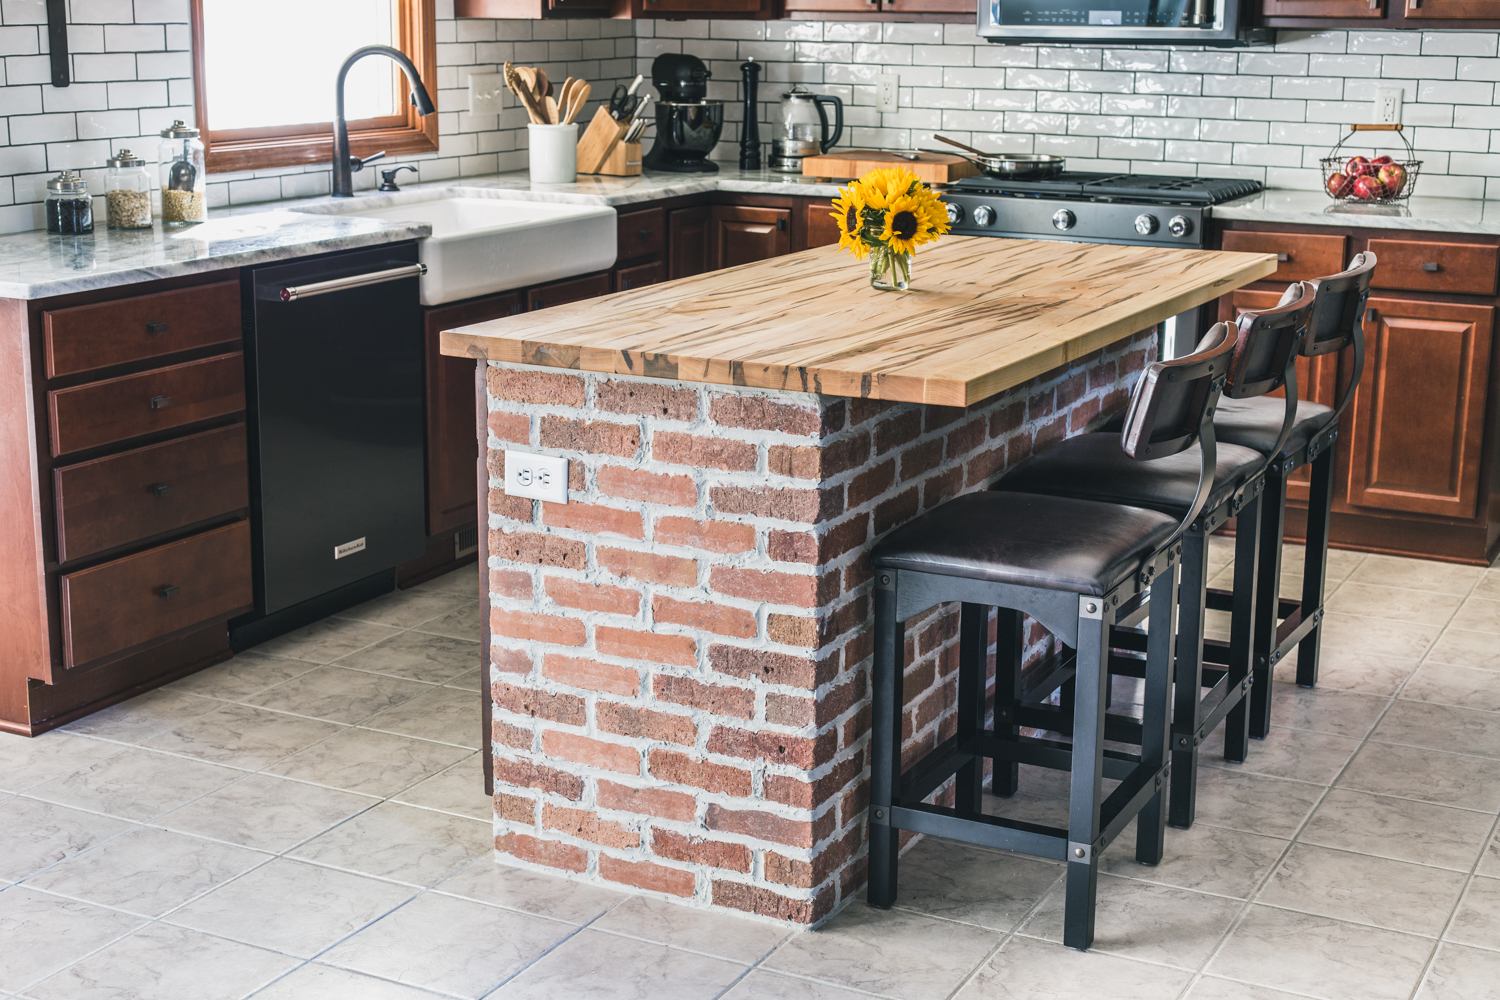 Kitchen Island With Exposed Brick And Wooden Countertop